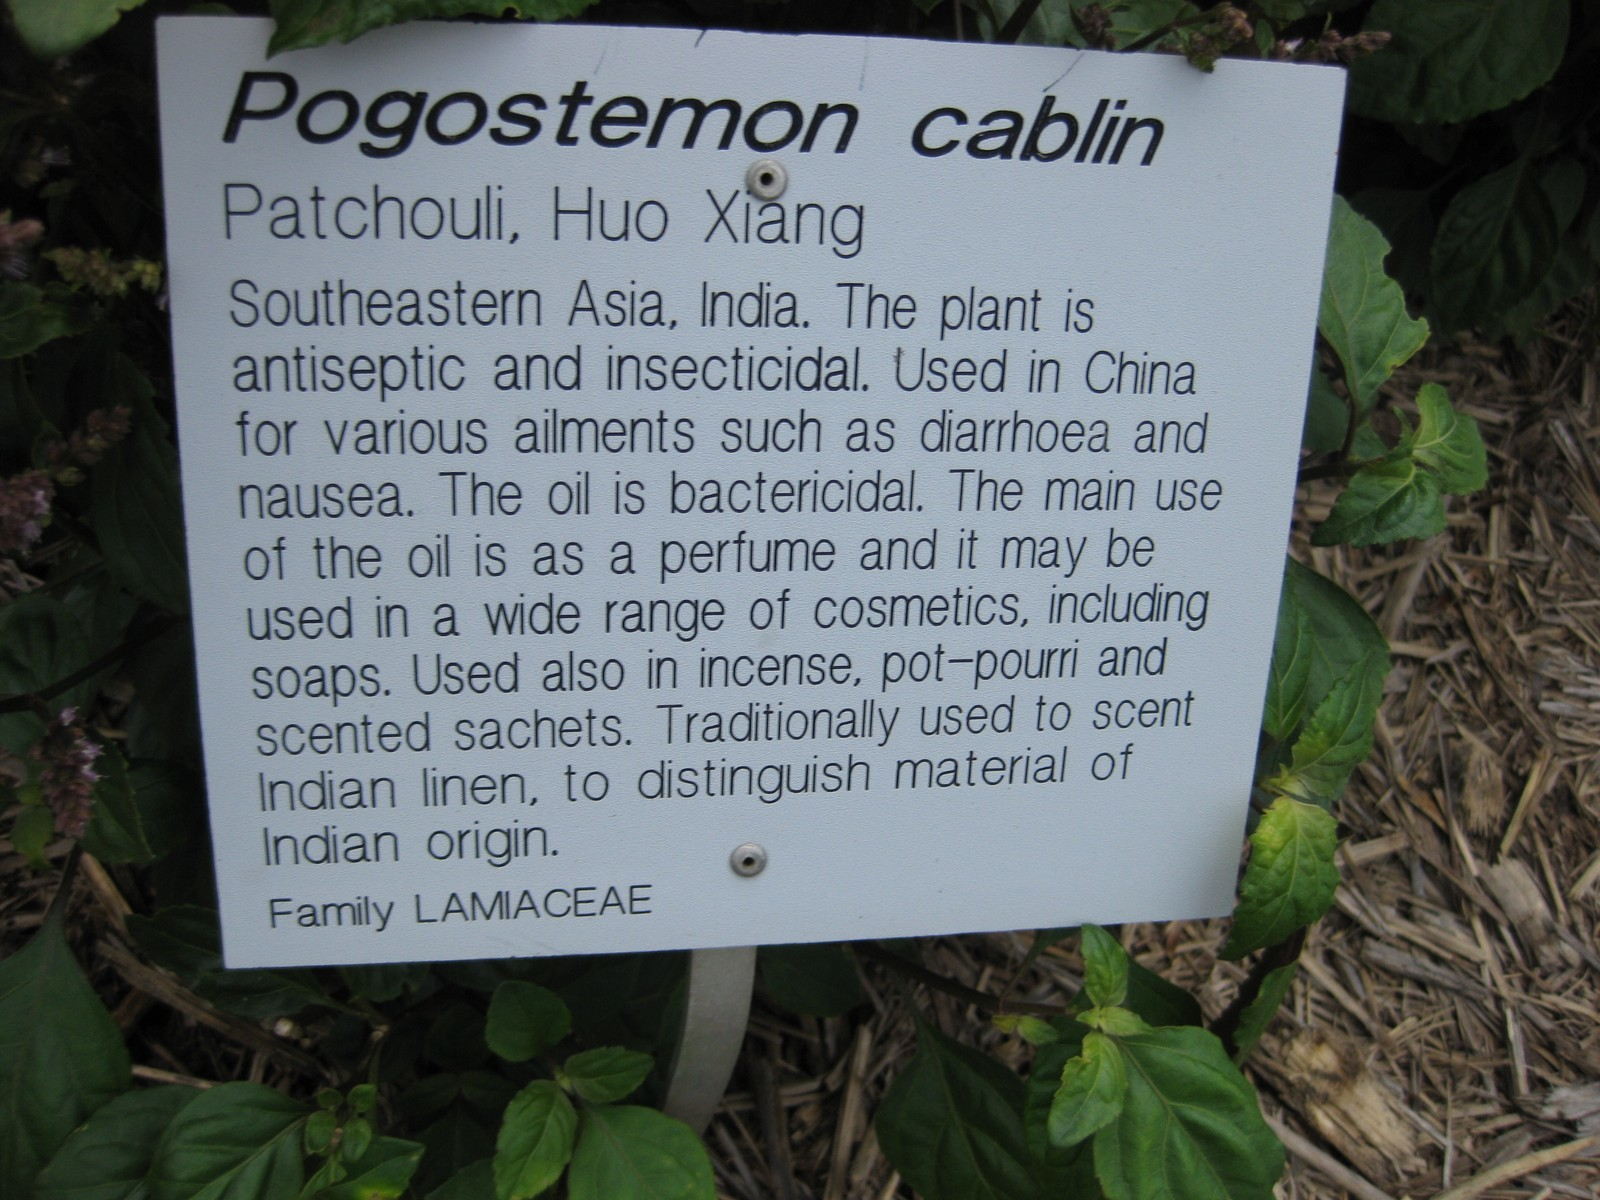 Image of patchouli